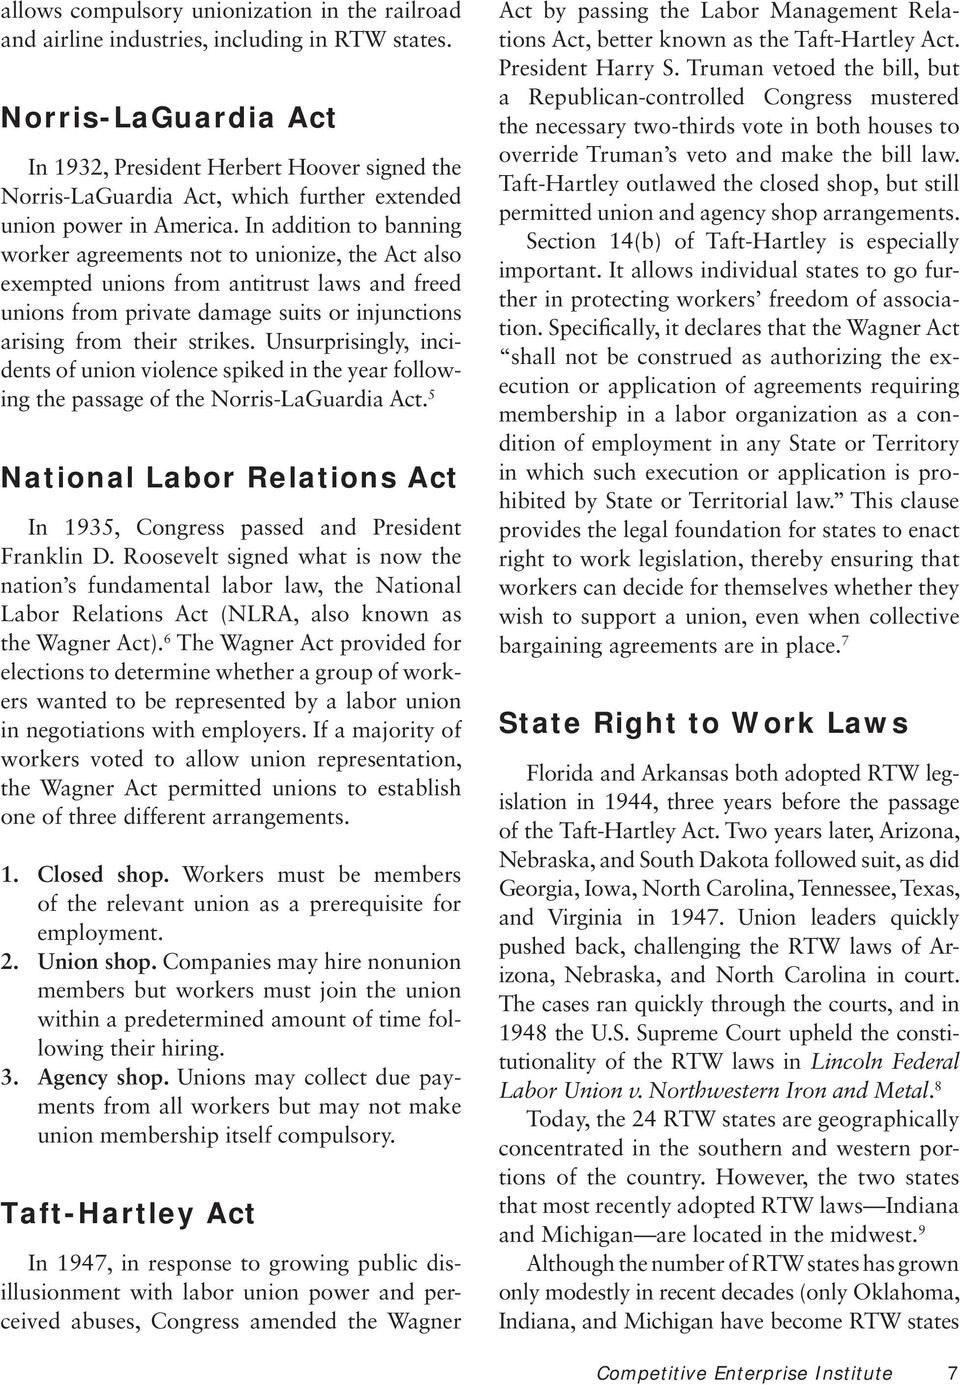 In addition to banning worker agreements not to unionize, the Act also exempted unions from antitrust laws and freed unions from private damage suits or injunctions arising from their strikes.